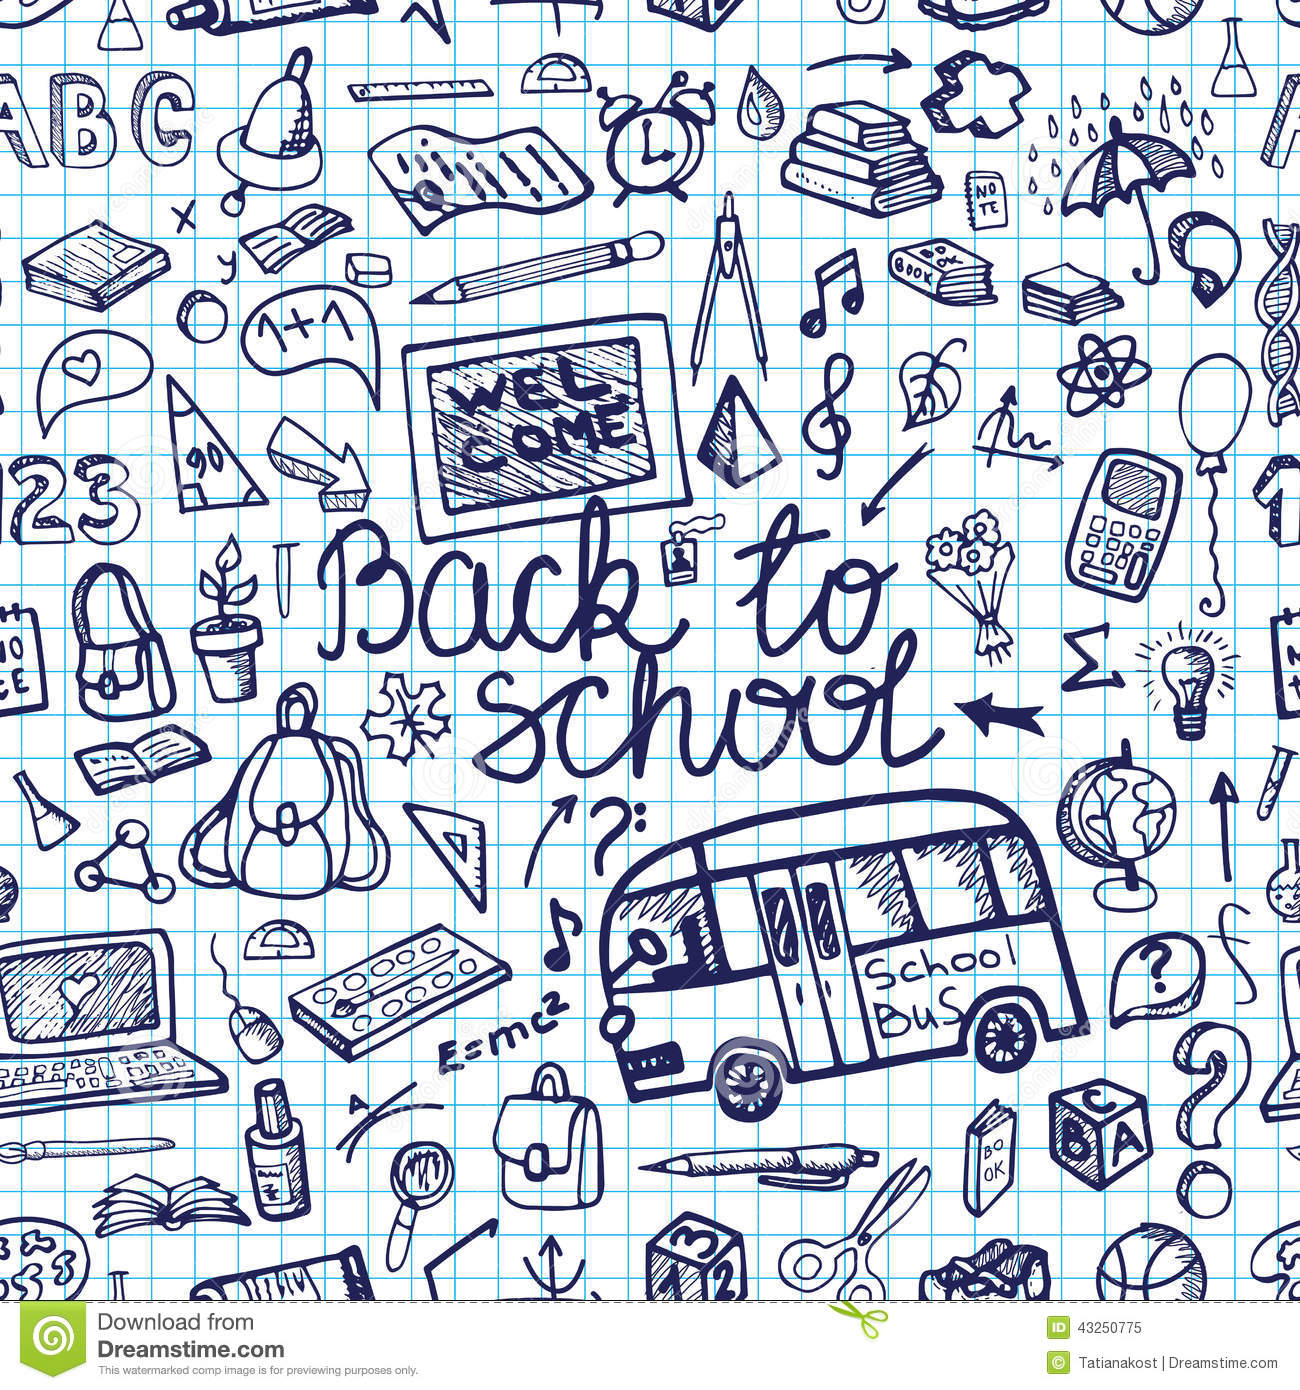 Back To School Supplies Sketchy Notebook.Seamless Stock